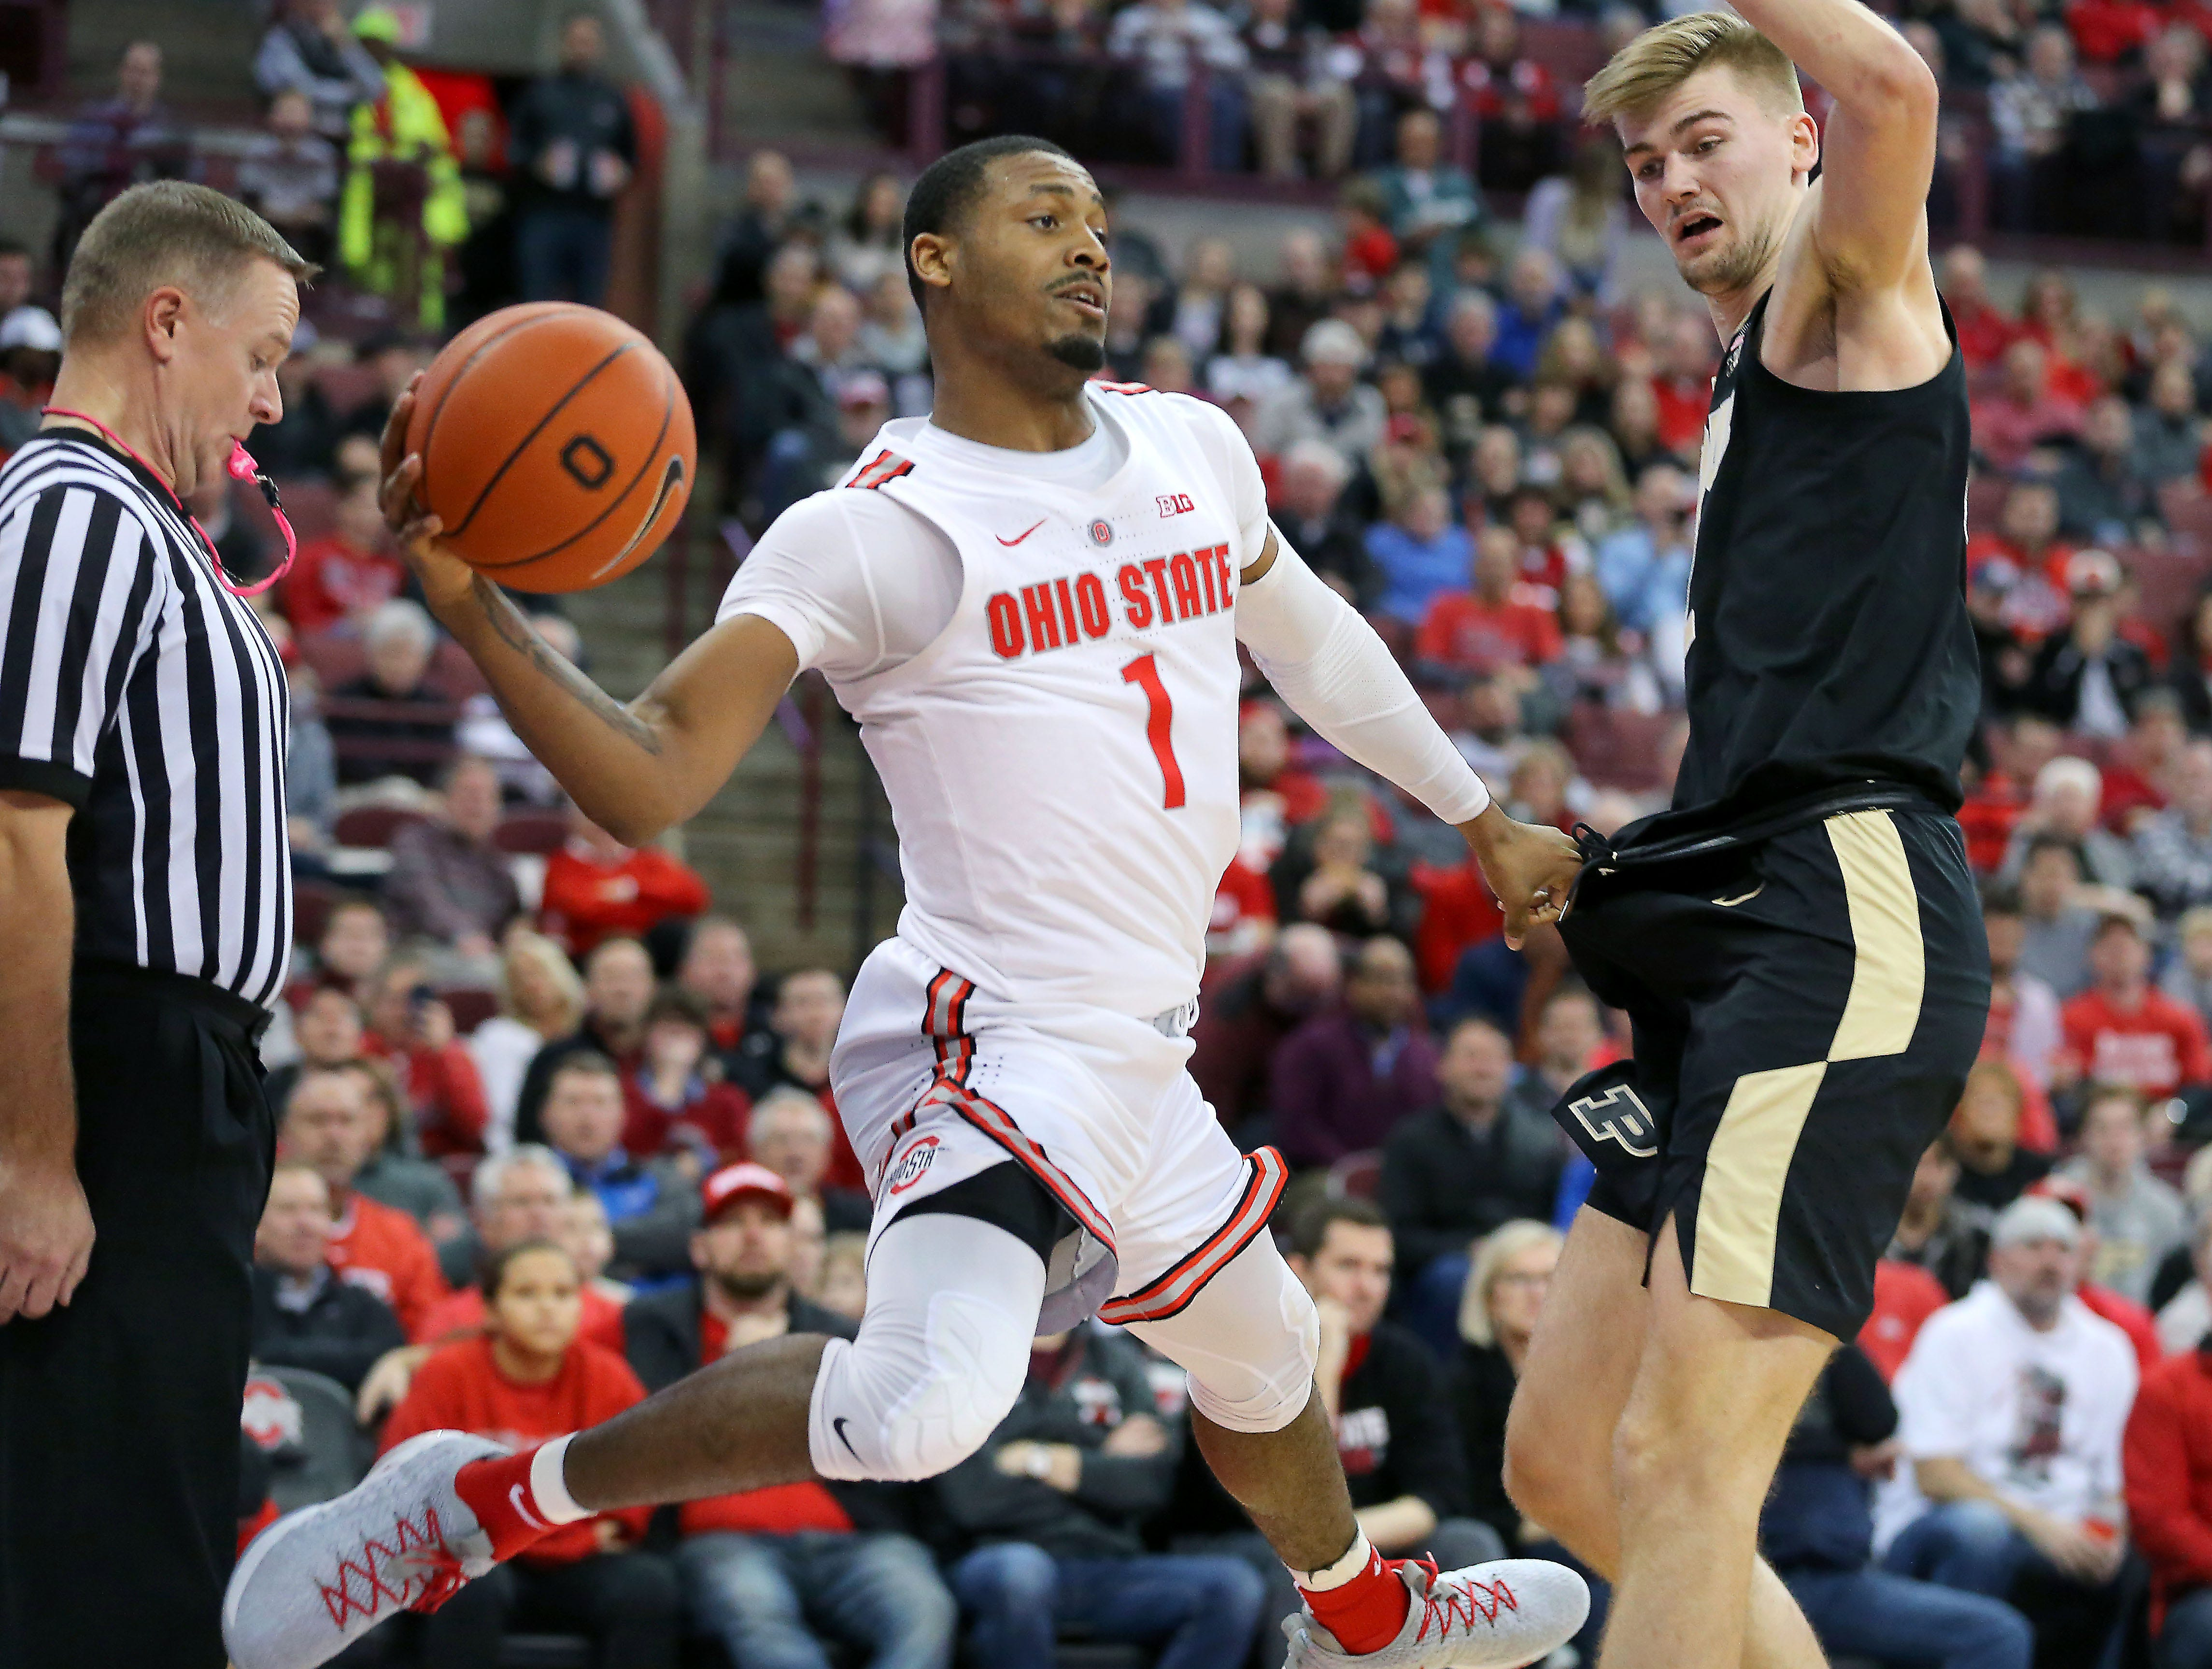 Jan 23, 2019; Columbus, OH, USA; Ohio State Buckeyes guard Luther Muhammad (1) saves the ball as Purdue Boilermakers center Matt Haarms (32) defends during the first half at Value City Arena. Mandatory Credit: Joe Maiorana-USA TODAY Sports